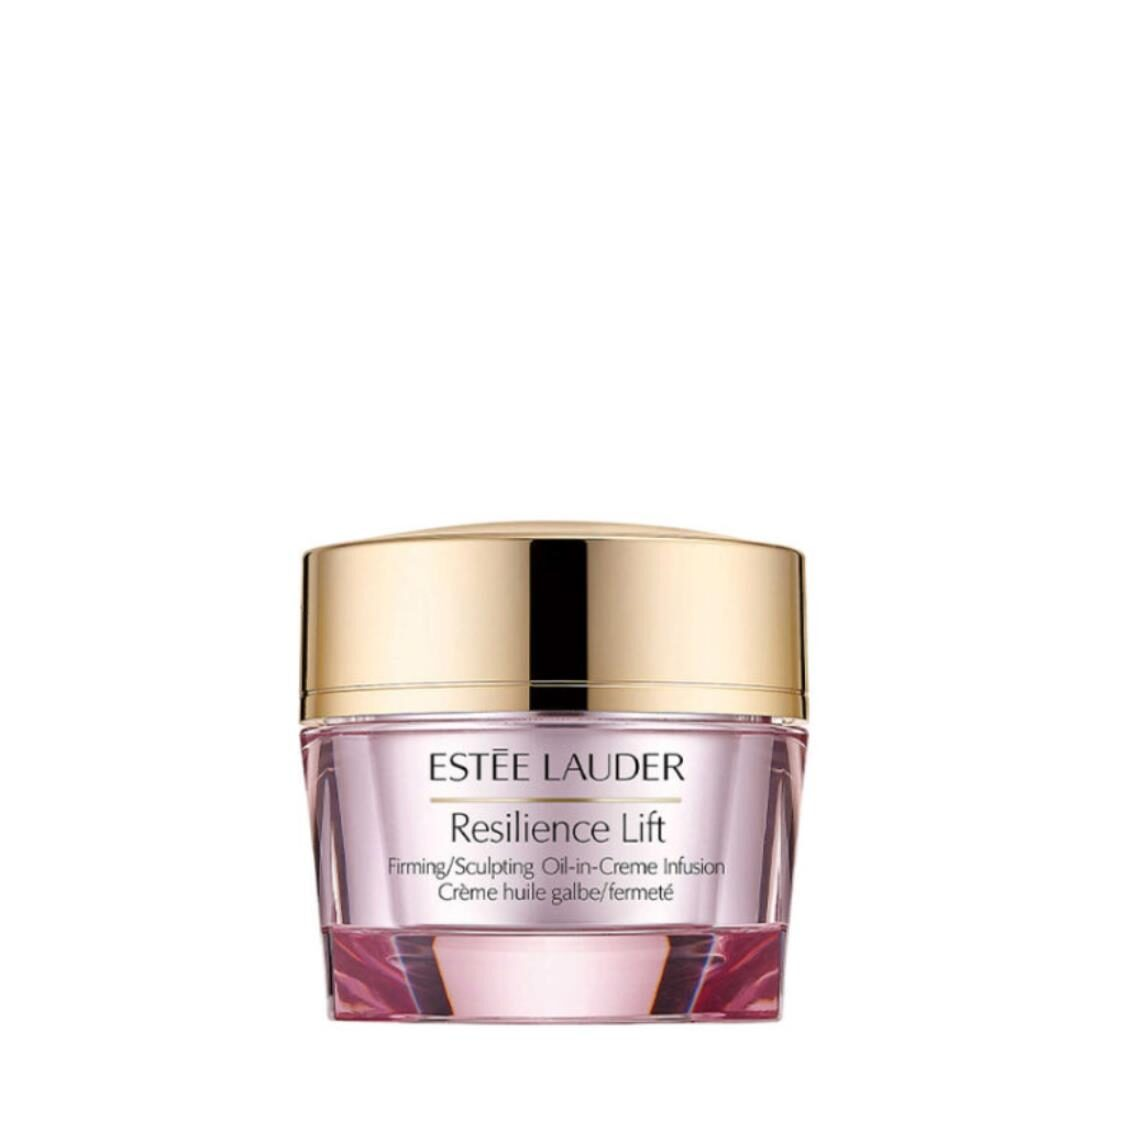 Este Lauder Resilience Lift FirmingSculpting Oil-In-Crme Infusion 50ml